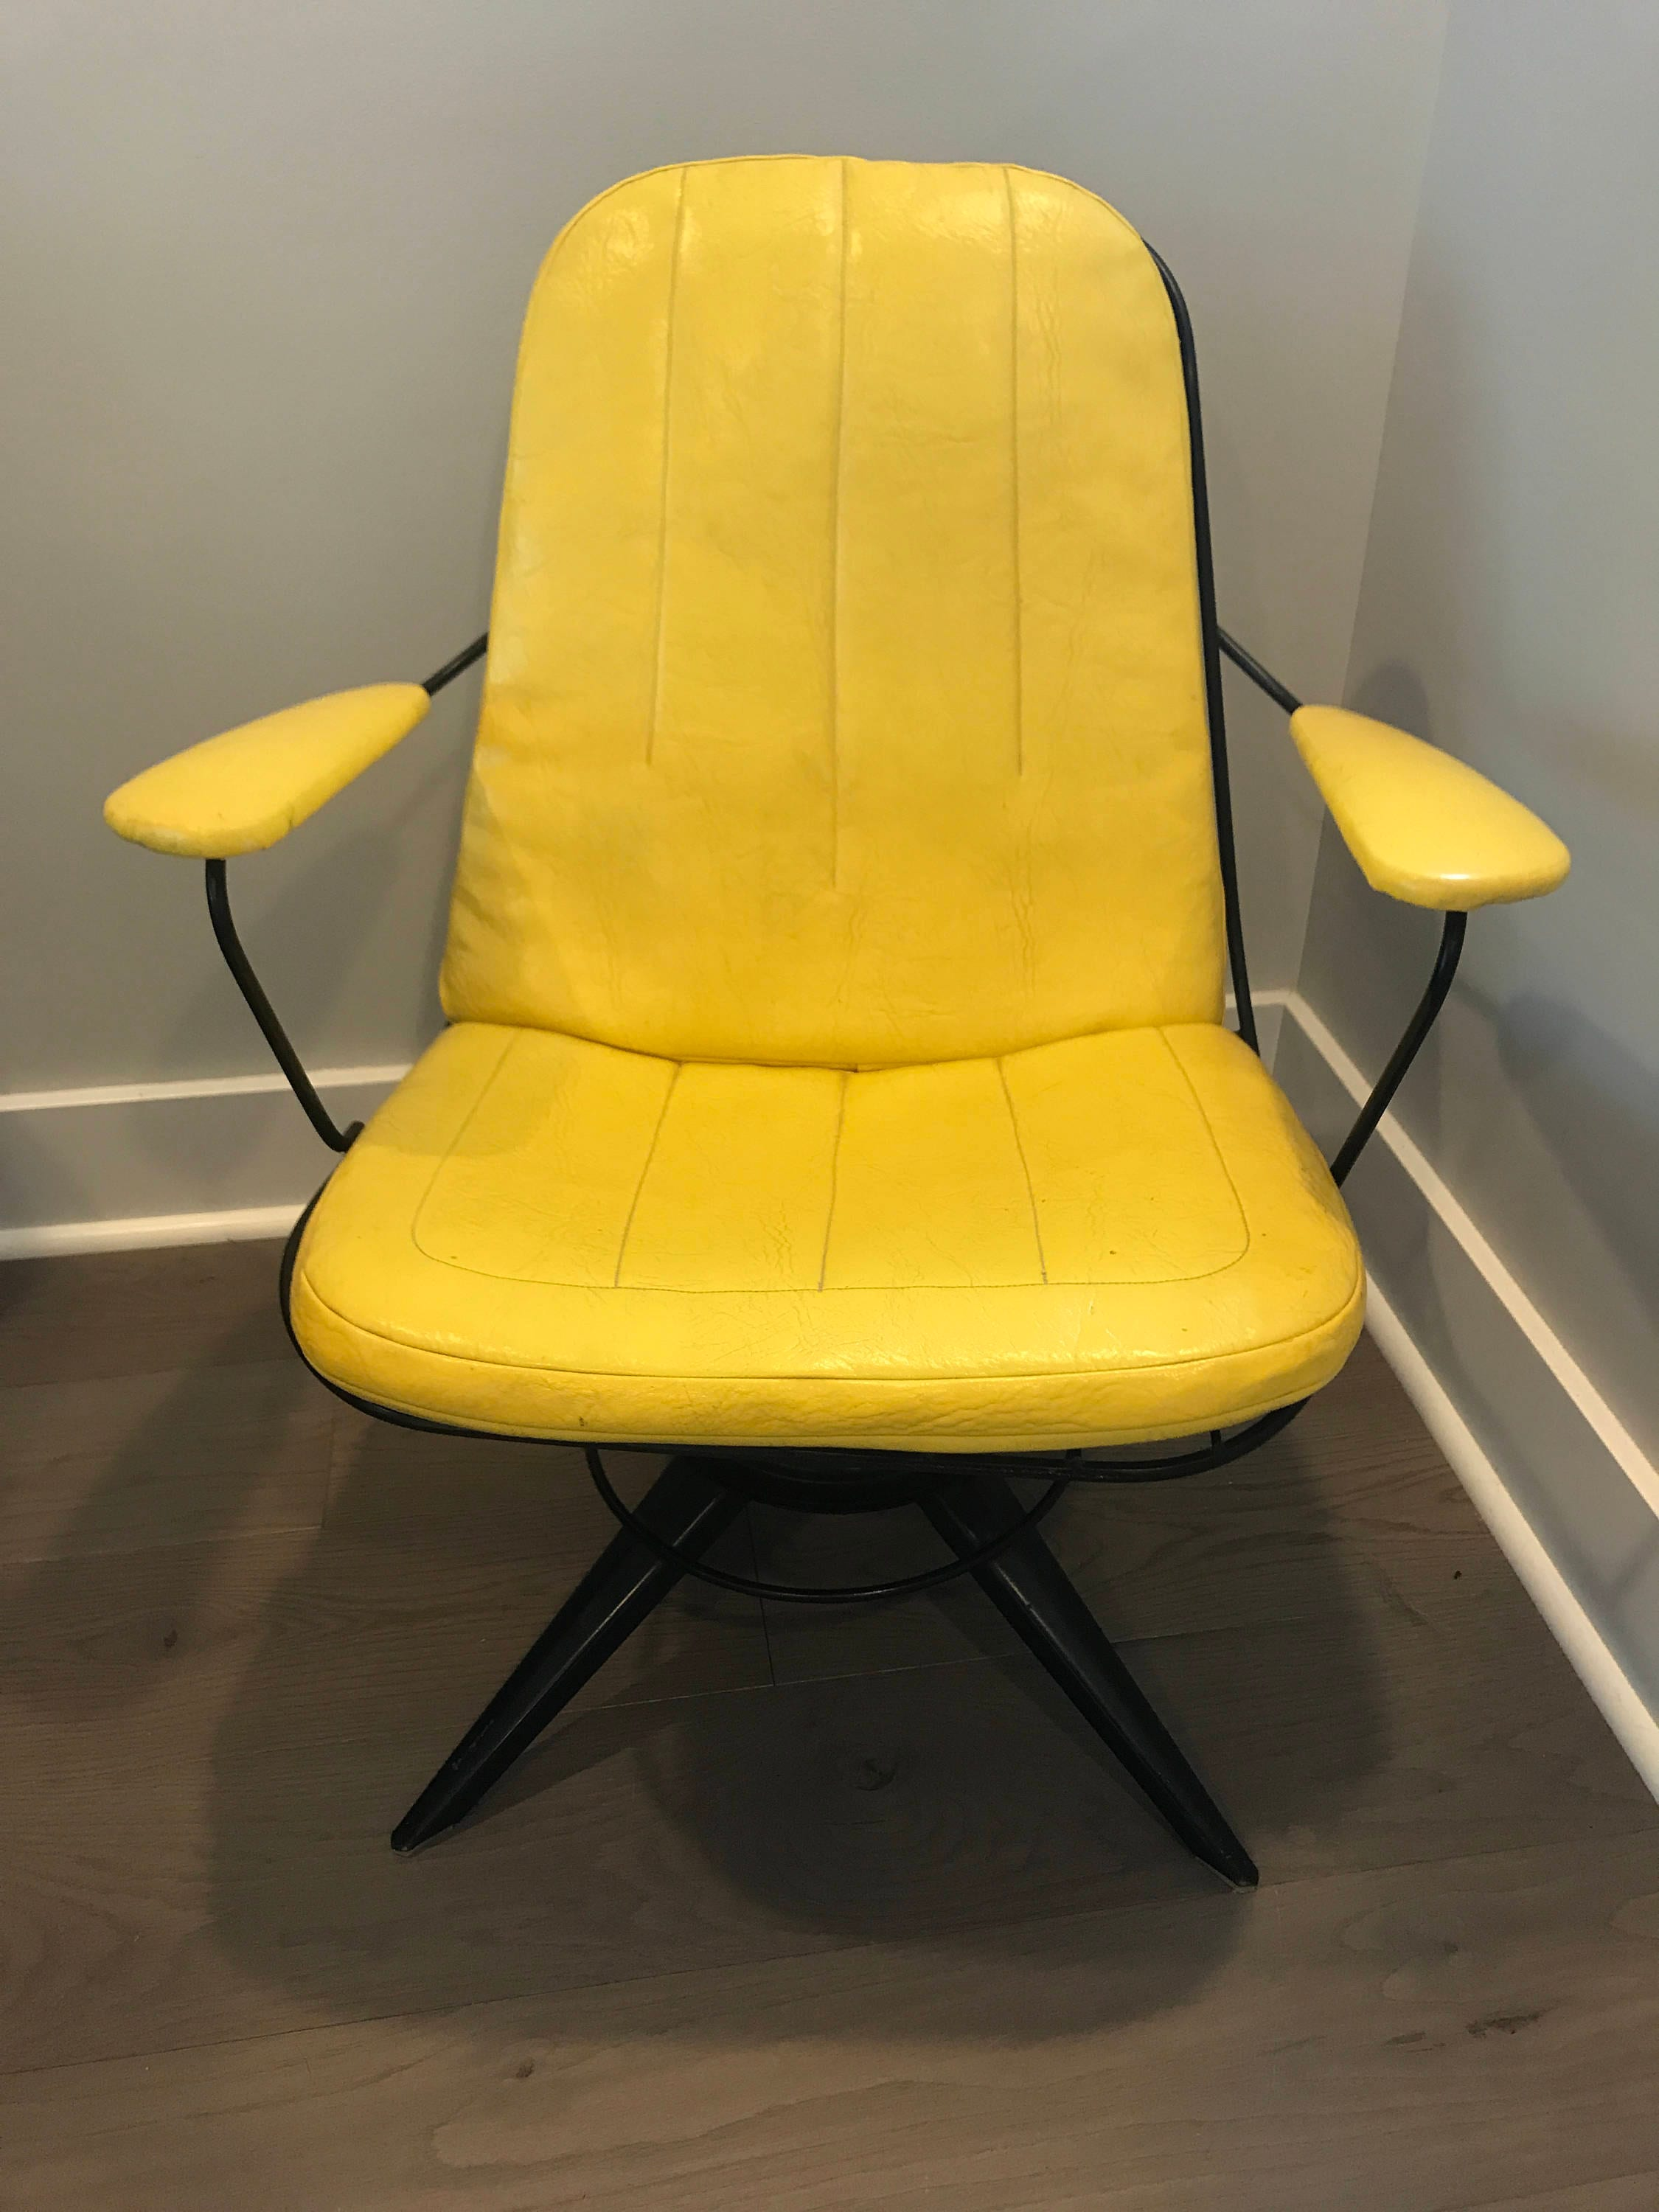 Homecrest Chair with Original Cushions Midcentury Modern